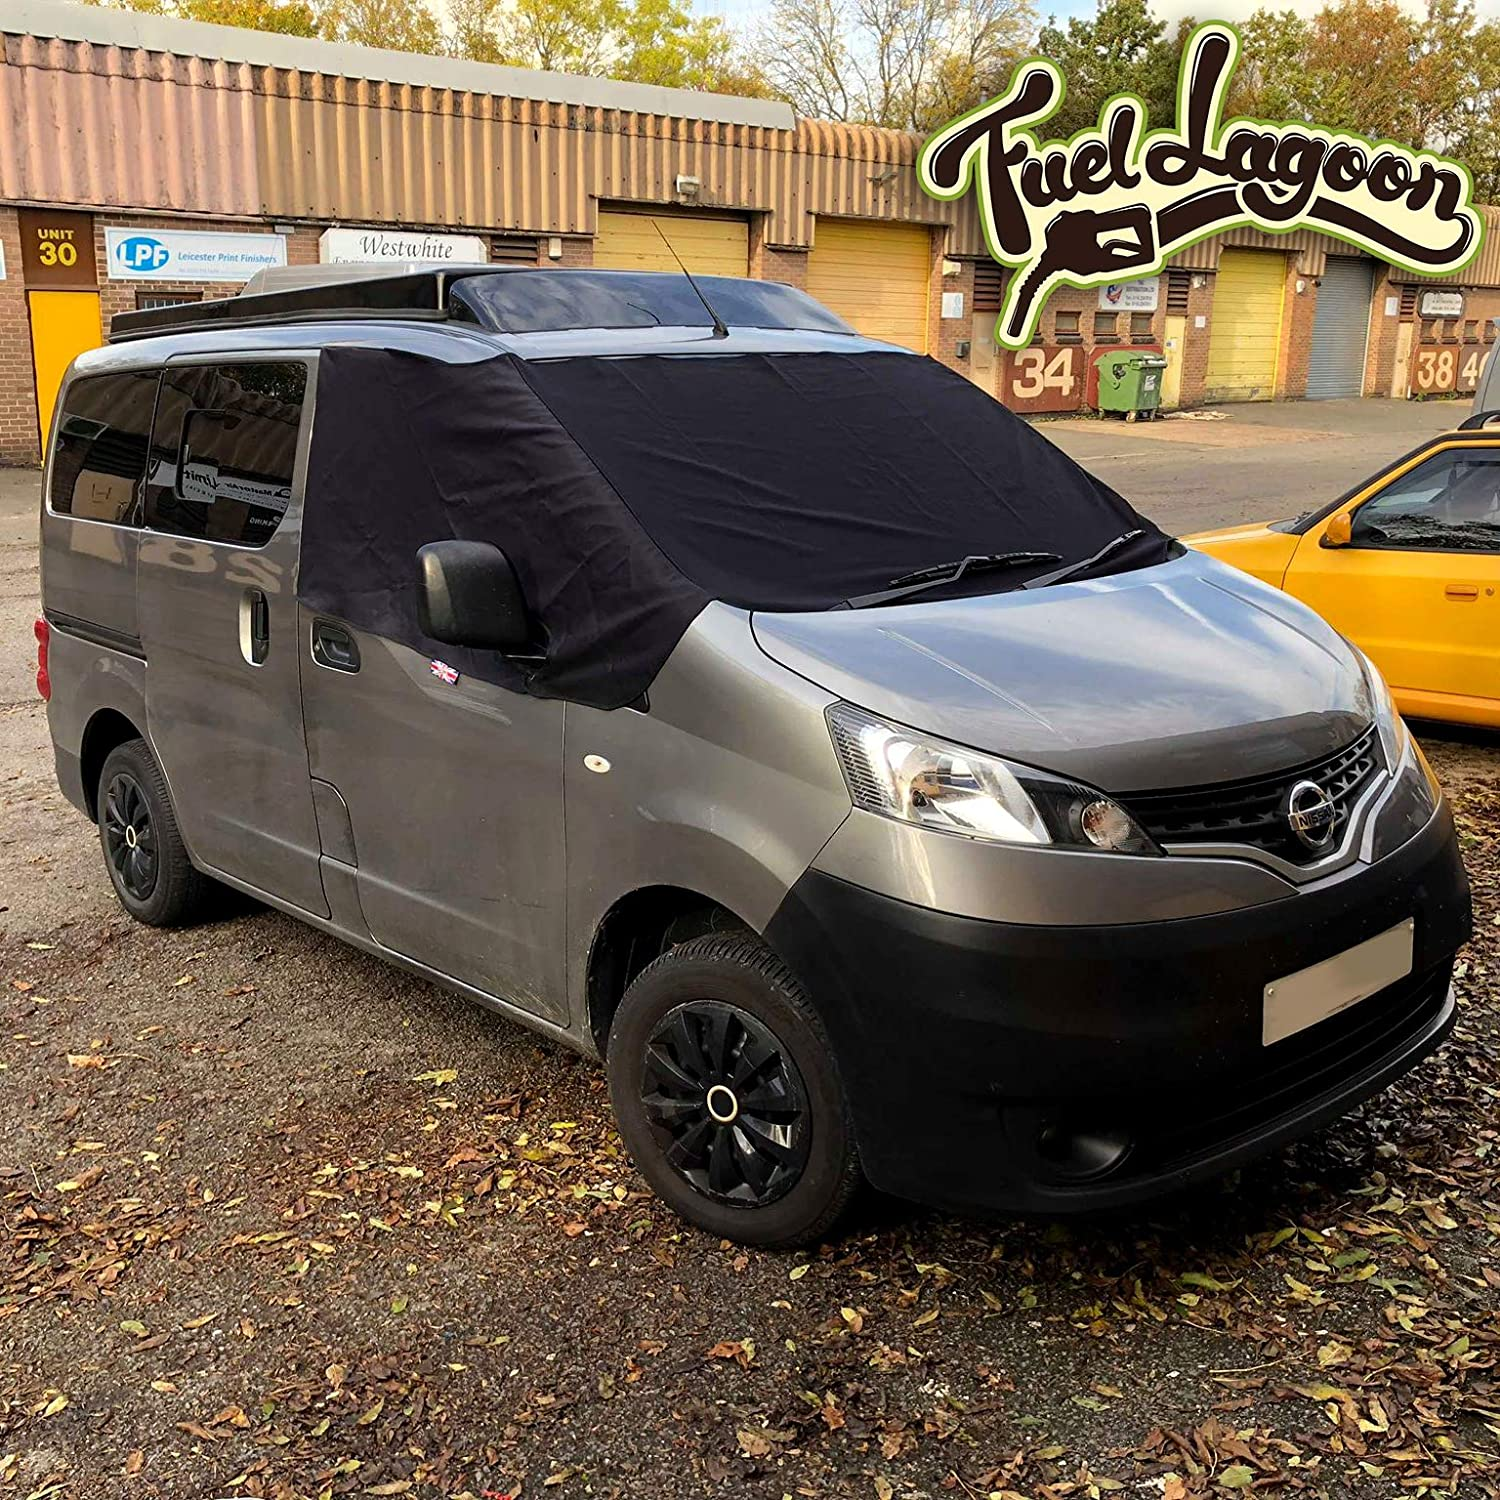 Fuel Lagoon NV200 screen cover black out wrap curtains fue lagoon